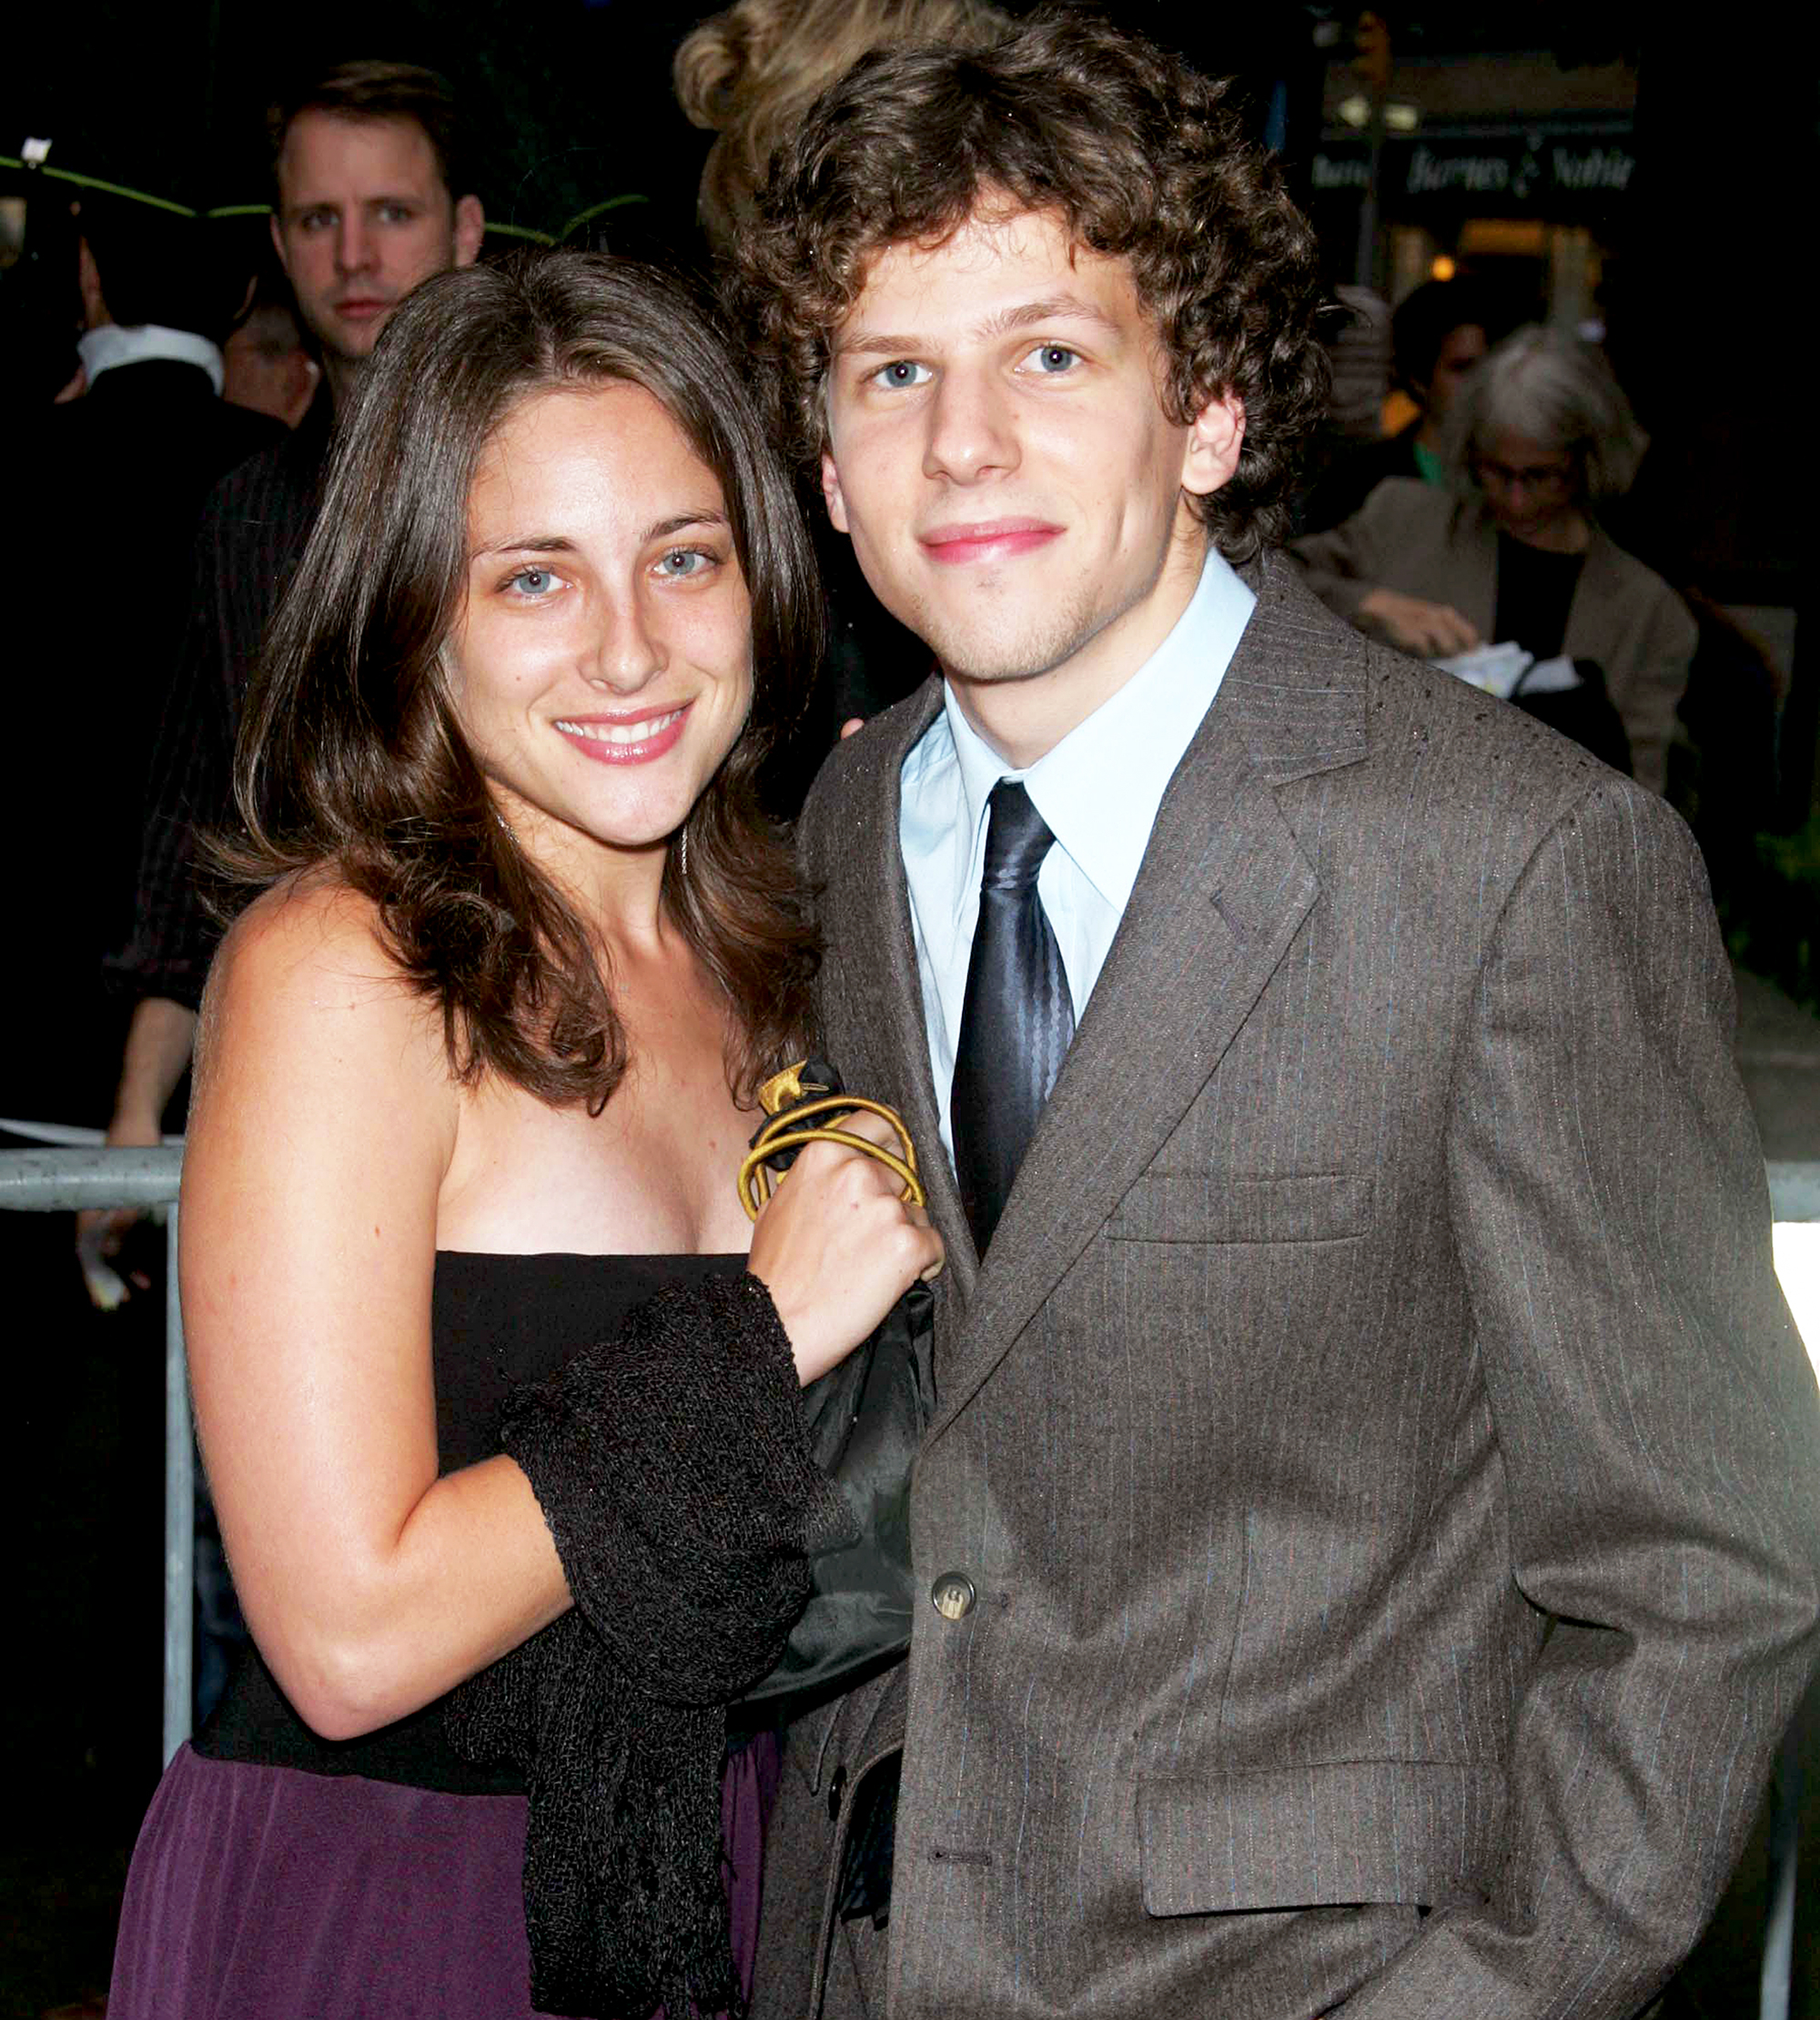 who is dating jesse eisenberg